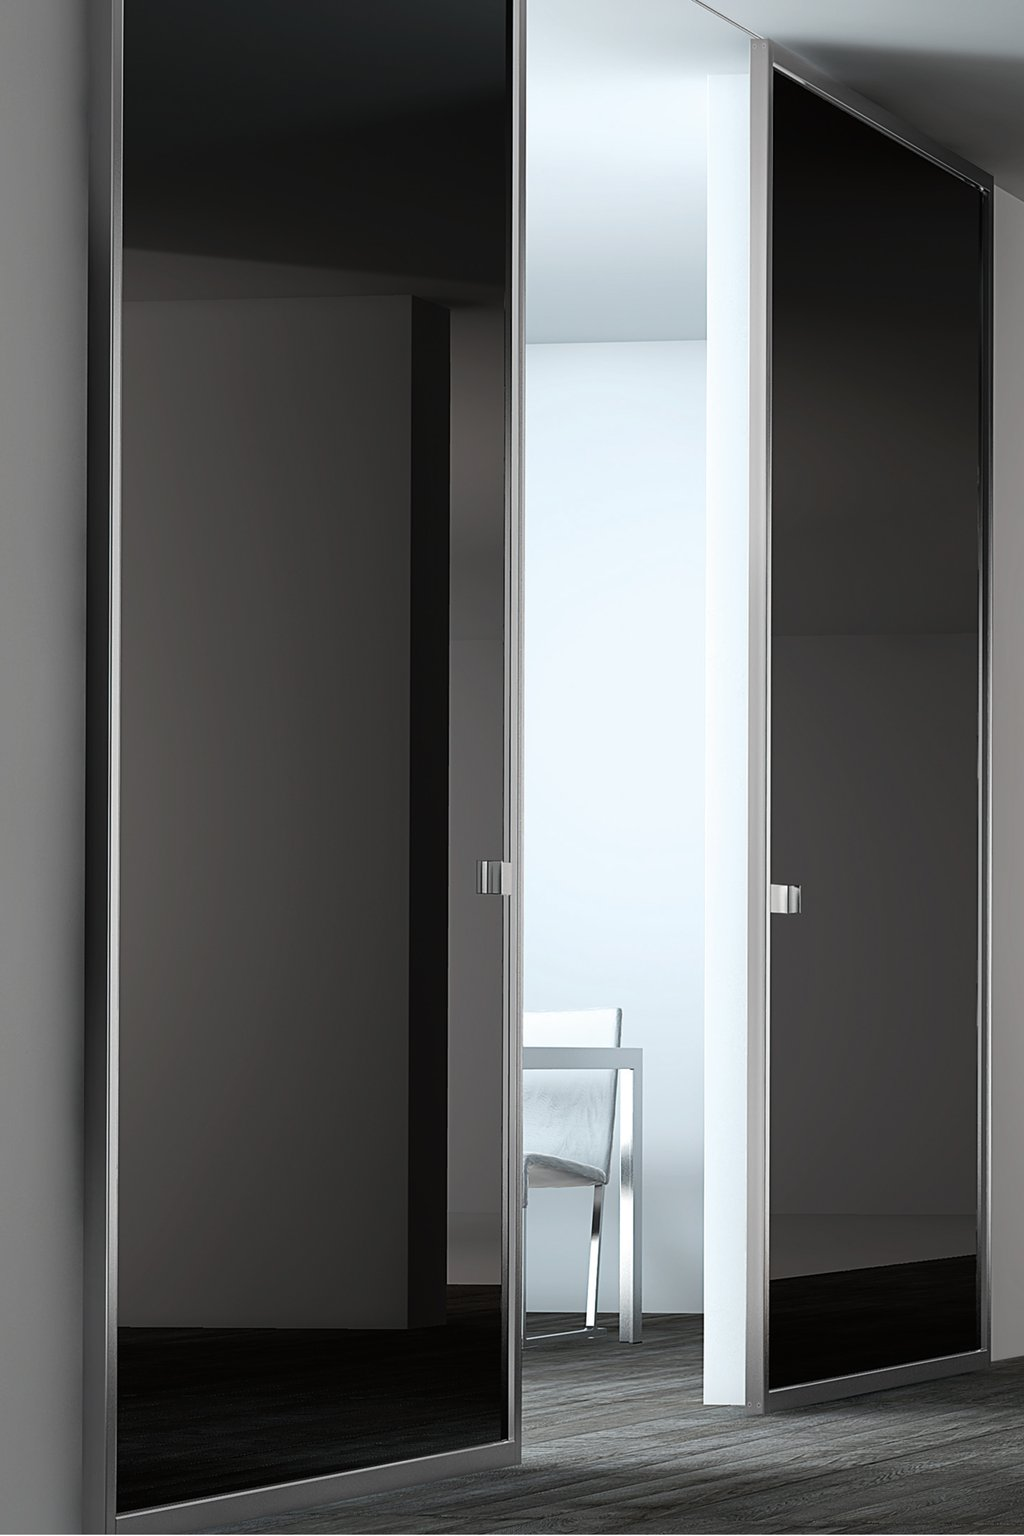 Doors ontario welcome to the doors open ontario website for Indoor sliding doors